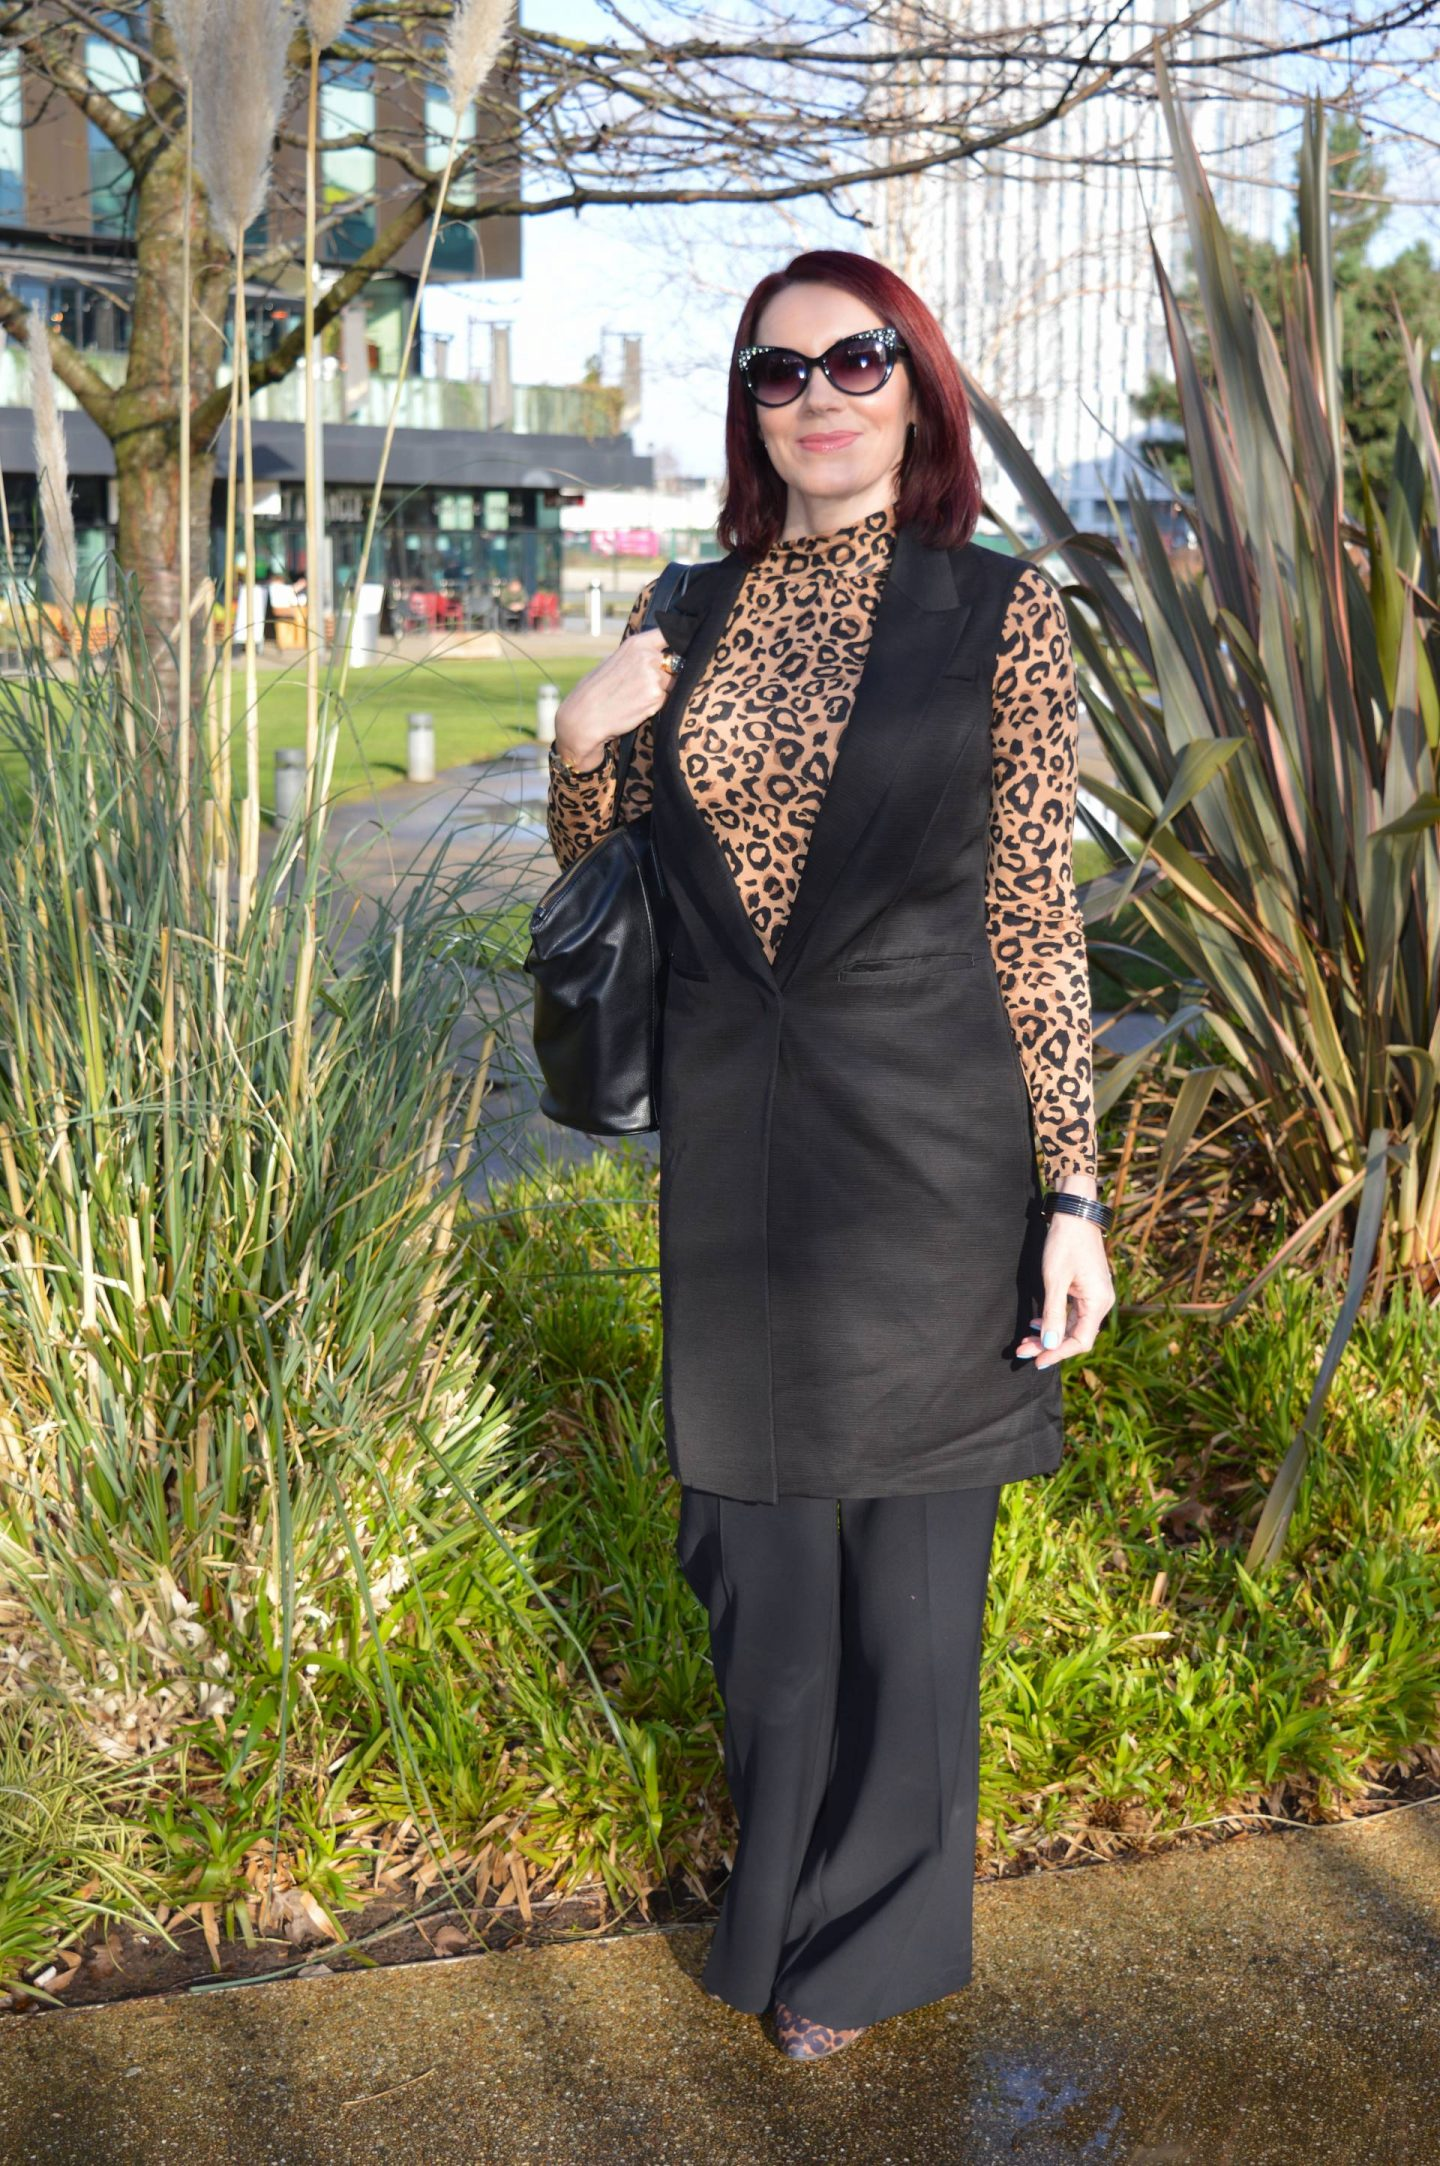 Classic Black and Leopard Print, Marks & Spencer black sleeveless jacket